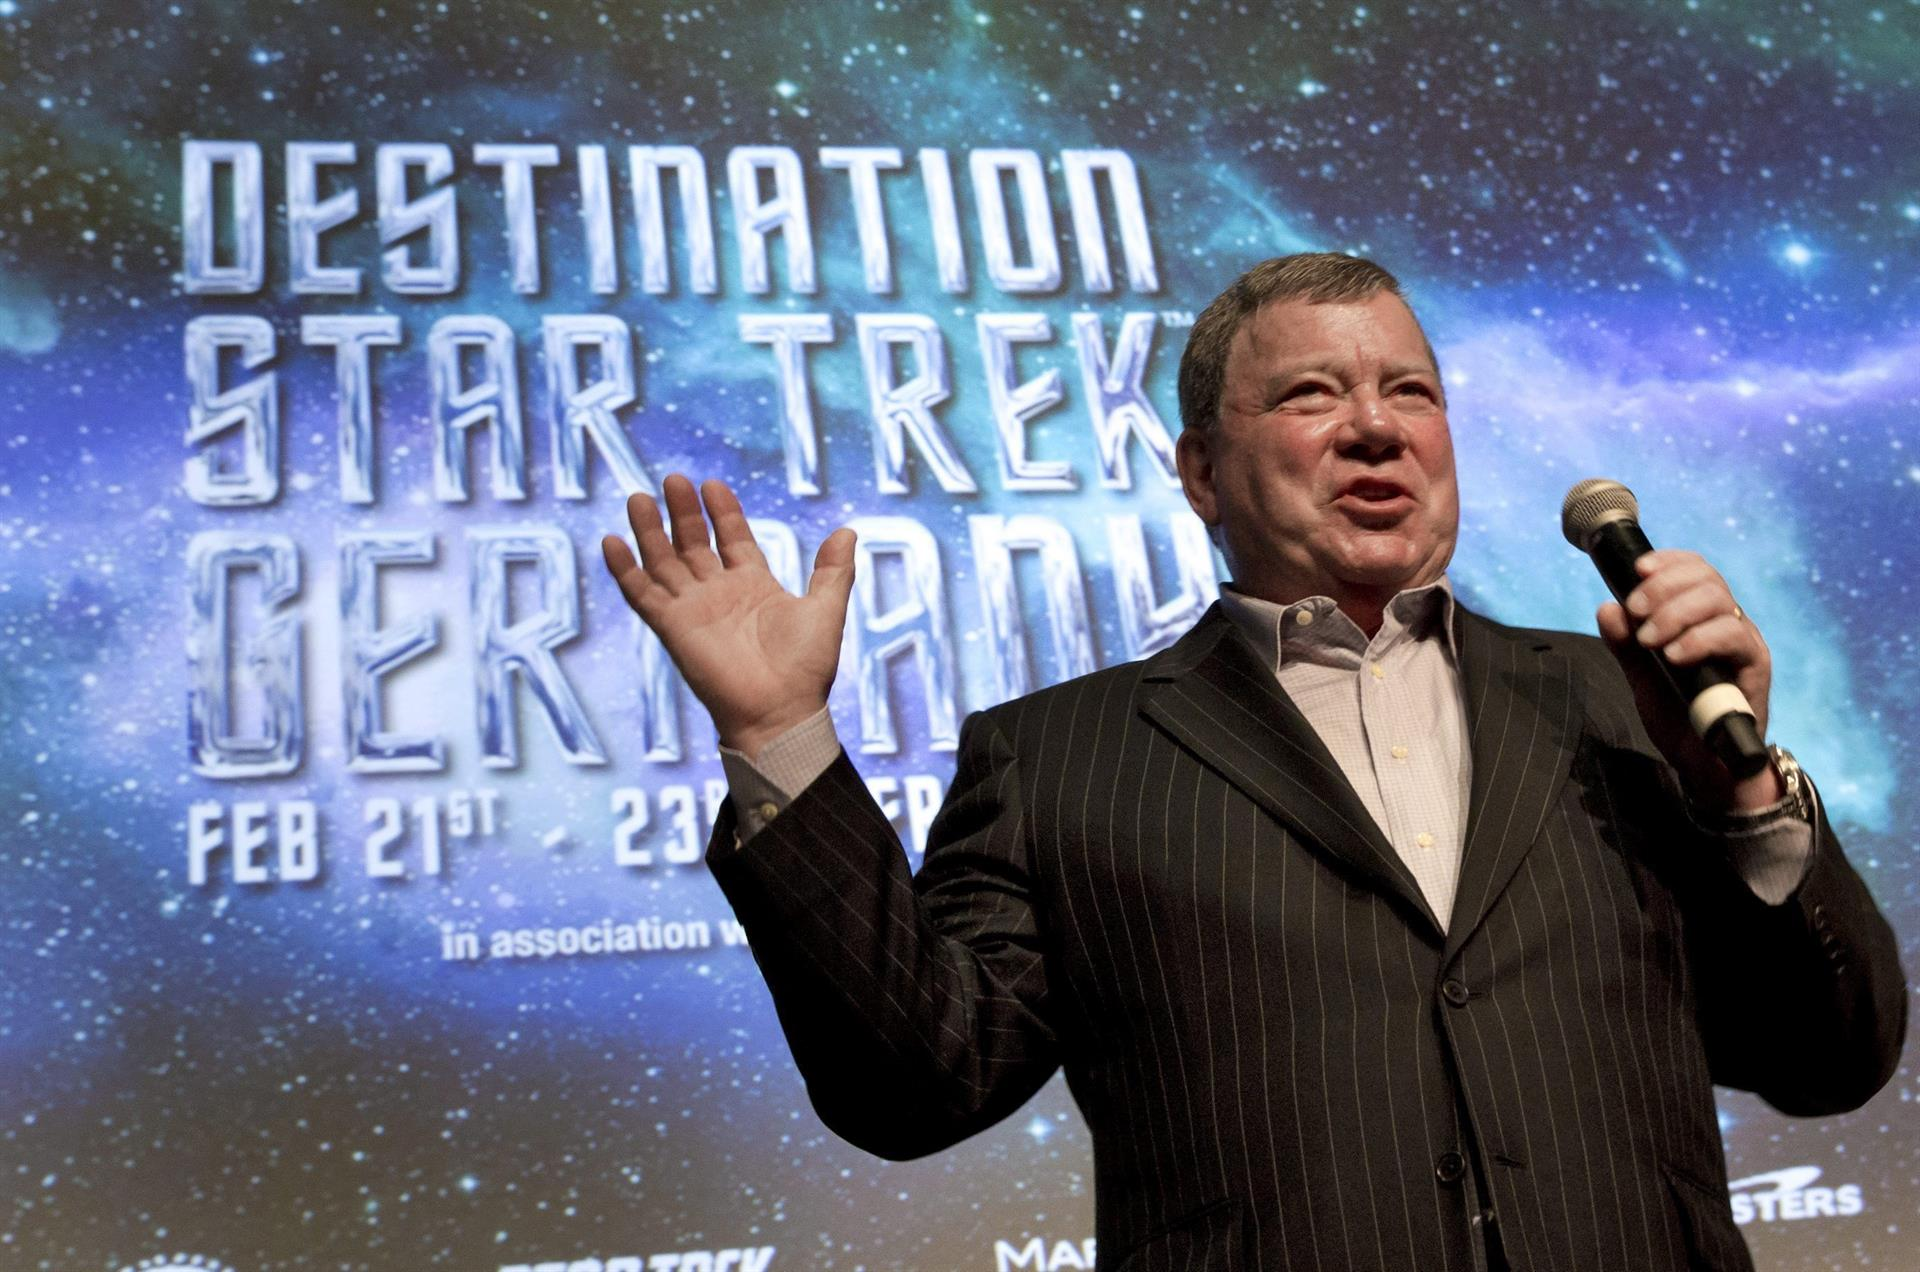 'Captain Kirk' Star William Shatner Travels to Space Aged 90 - El American